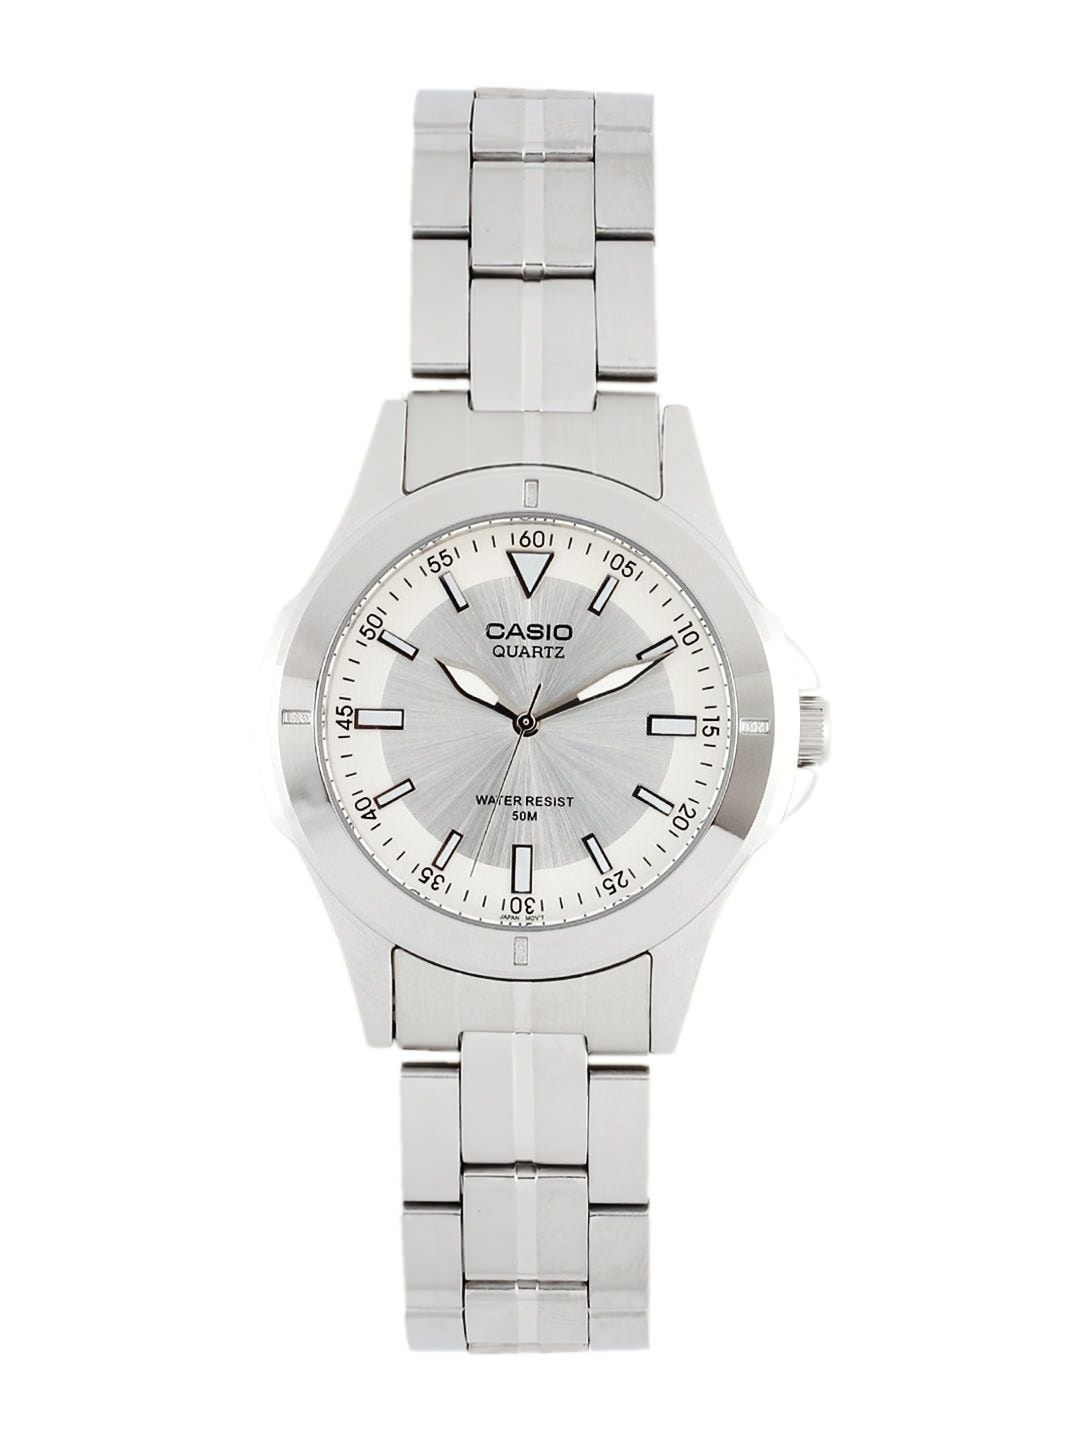 Casio Men Analog Watches Price List In India 3 December 2018 Edifice Ef 534rbk 1a Silver Toned Dial Watch A344